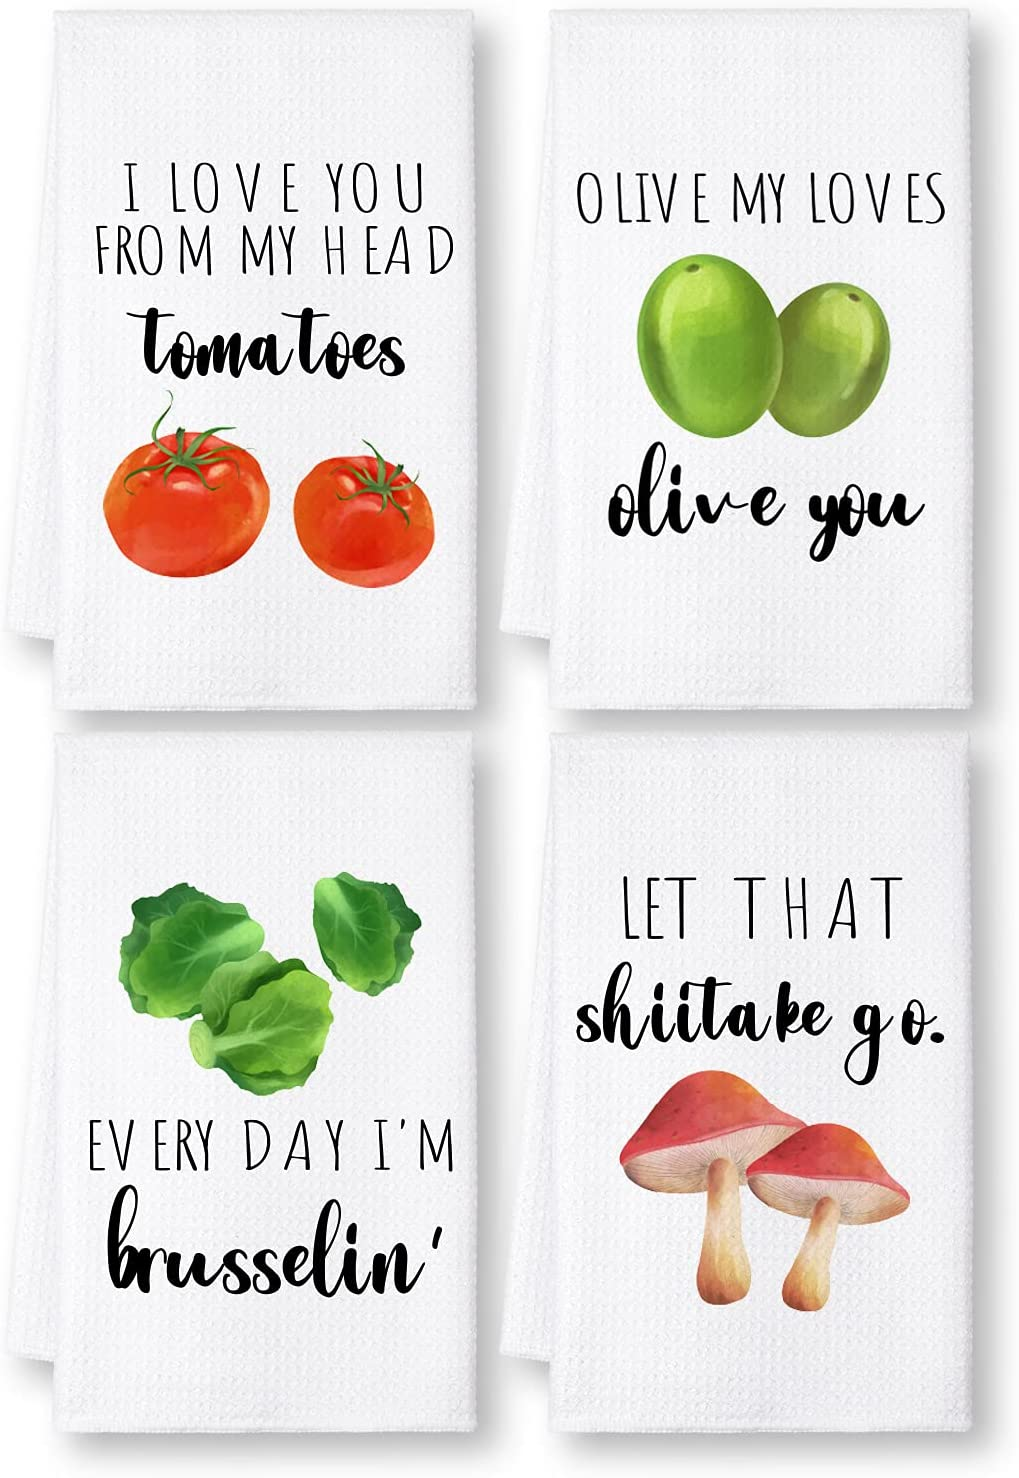 TASRUIMI Funny Kitchen Towels Set of 4 - Funny Kitchen Dish Towels - Kitchen Decor - Housewarming Gifts - Fun Hostess Gifts - Gifts for Bridal Shower, Wedding Shower